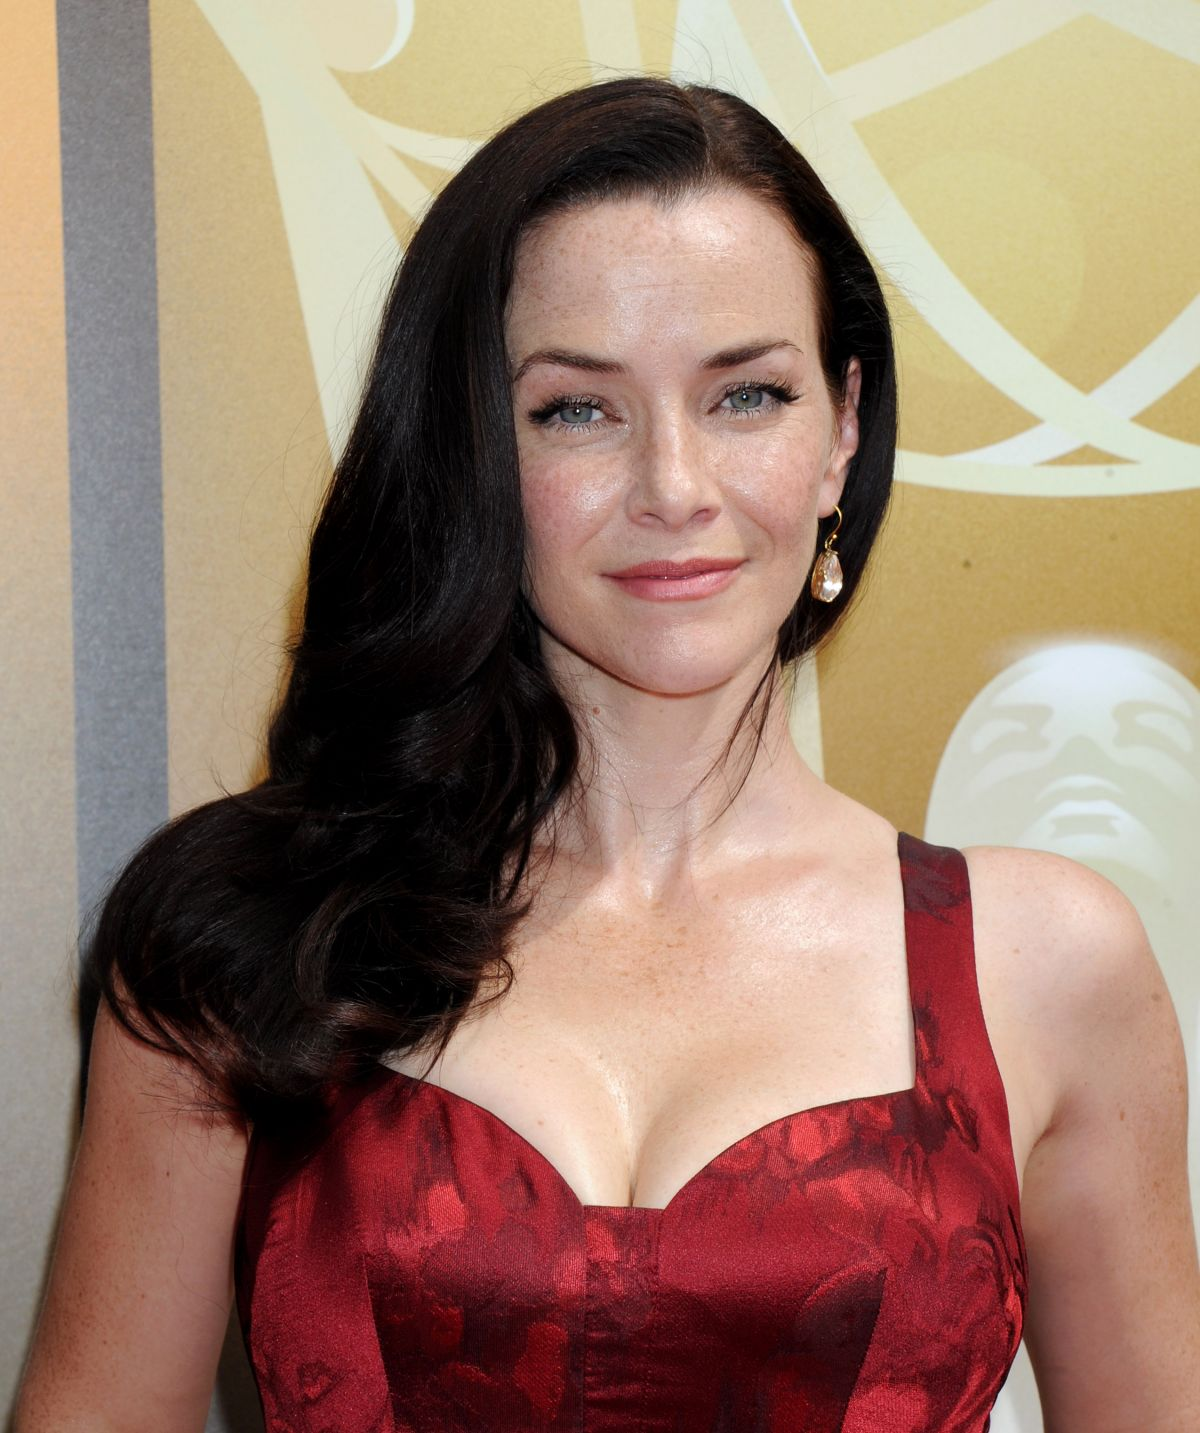 annie wersching - photo #32